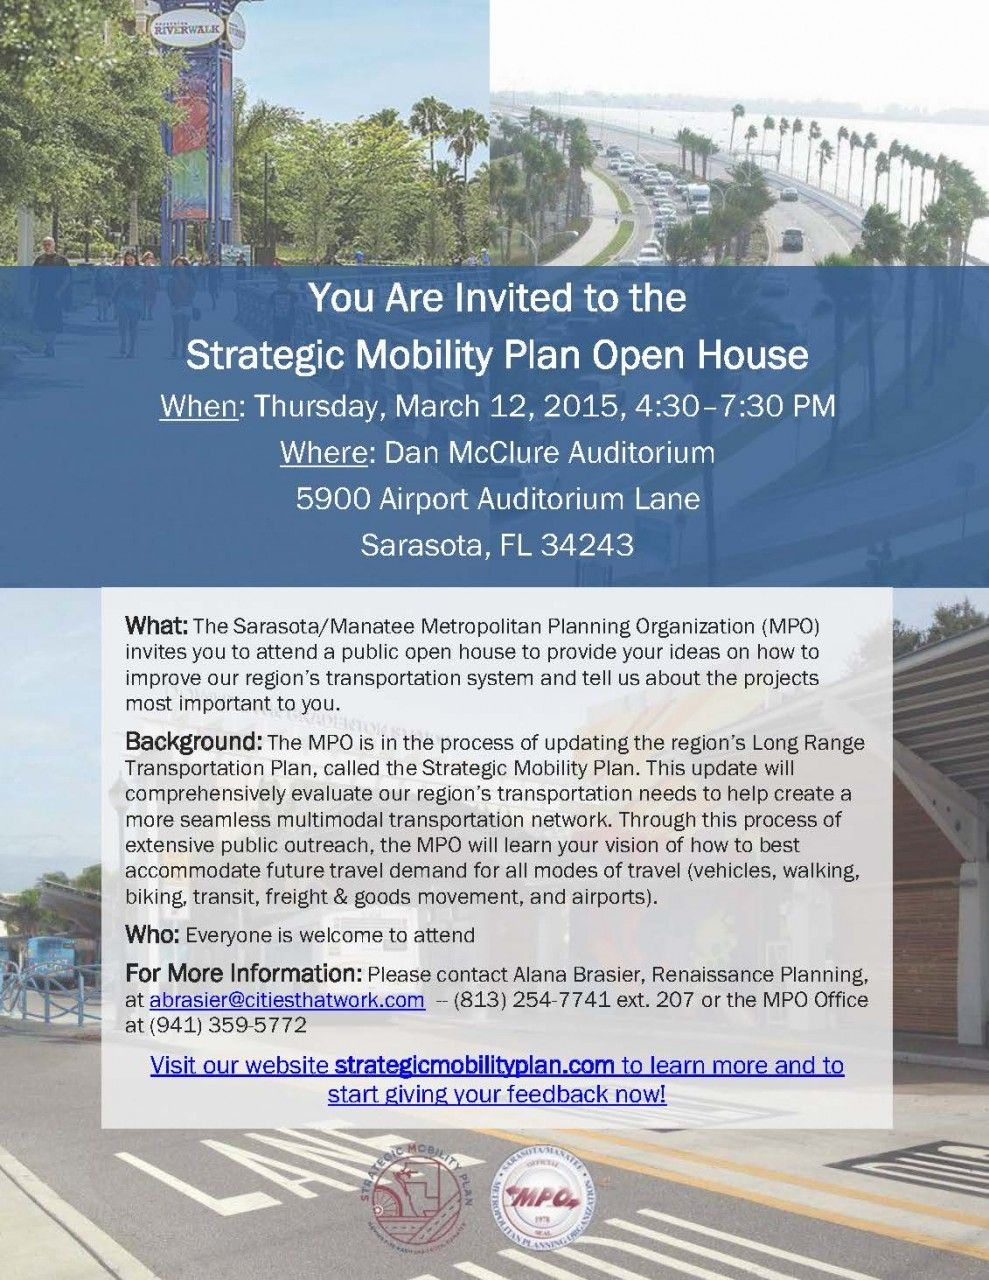 You are Invited to the Strategic Mobility Plan Open House!